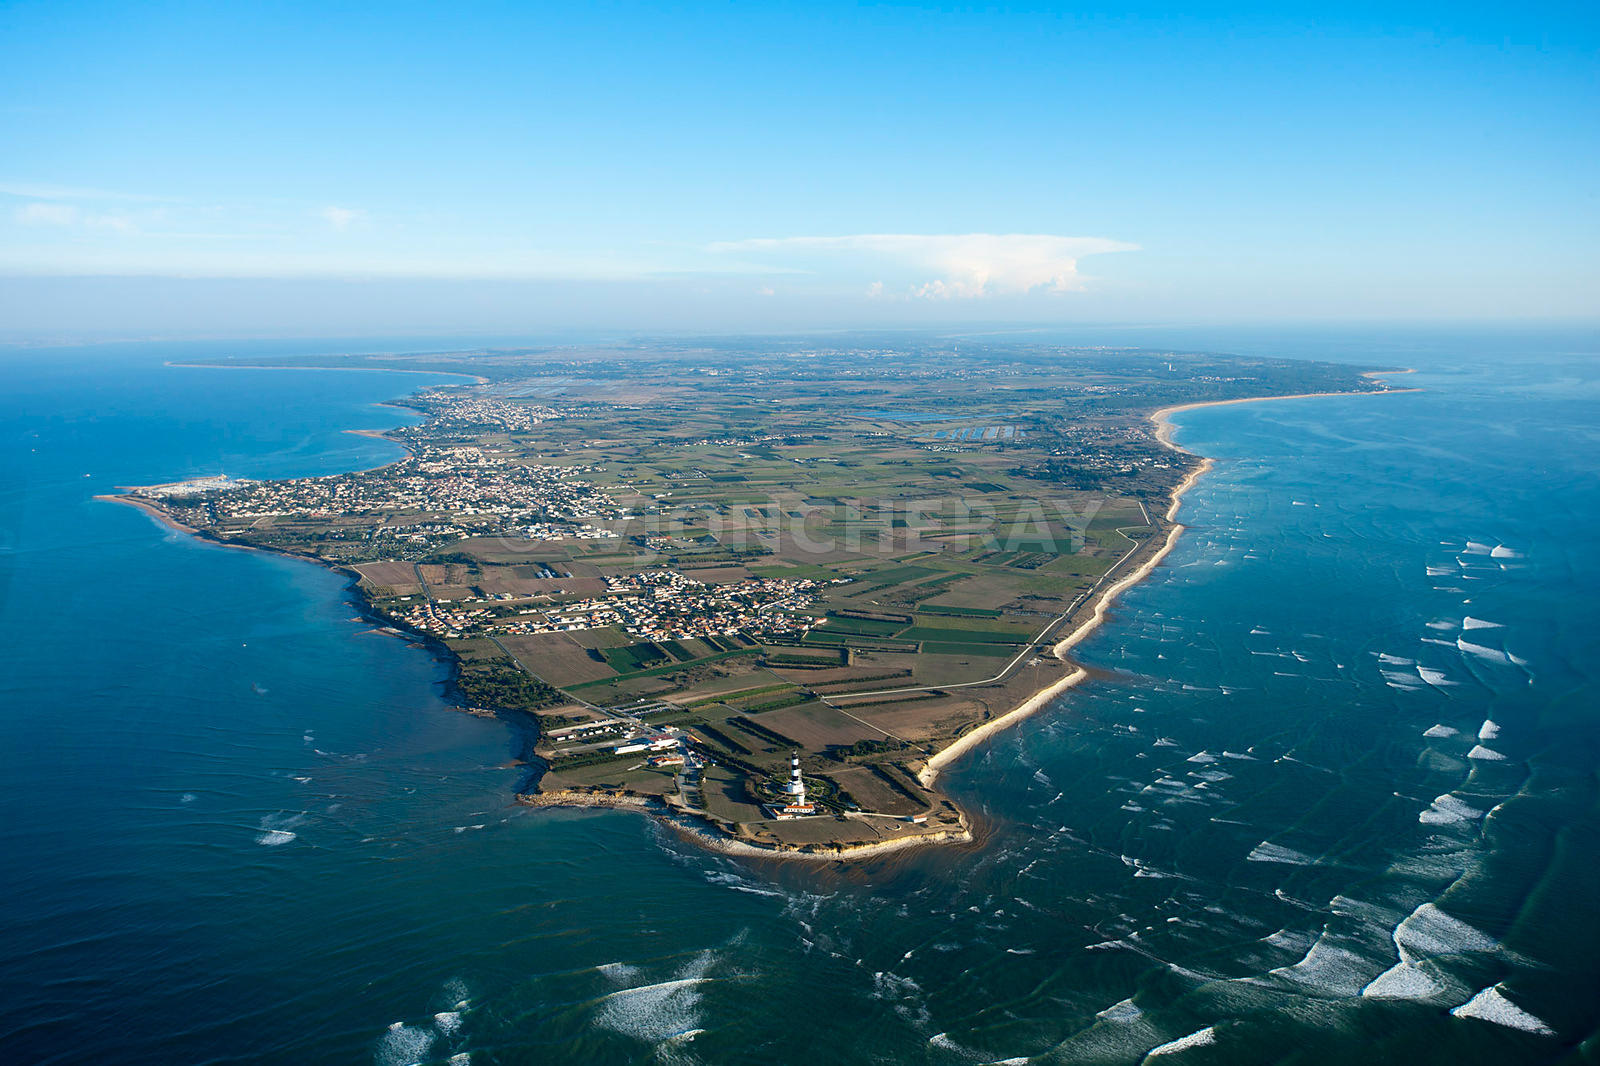 photo: ile d oleron